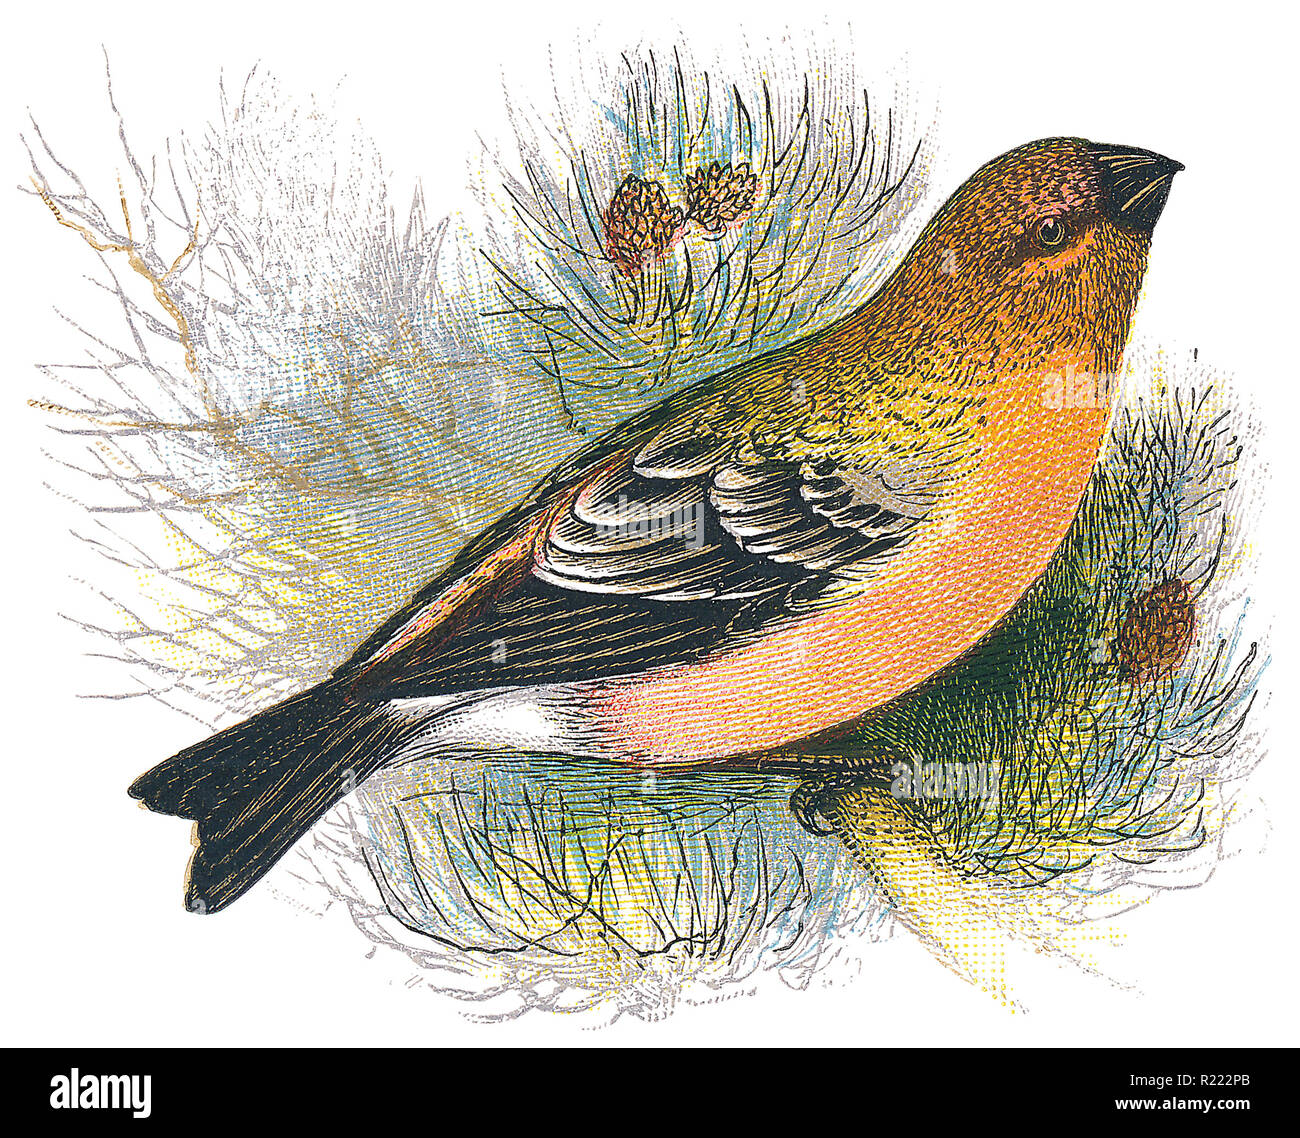 1898 colour engraving of a pine grosbeak (Pinicola enucleator), a member of the finch family. - Stock Image